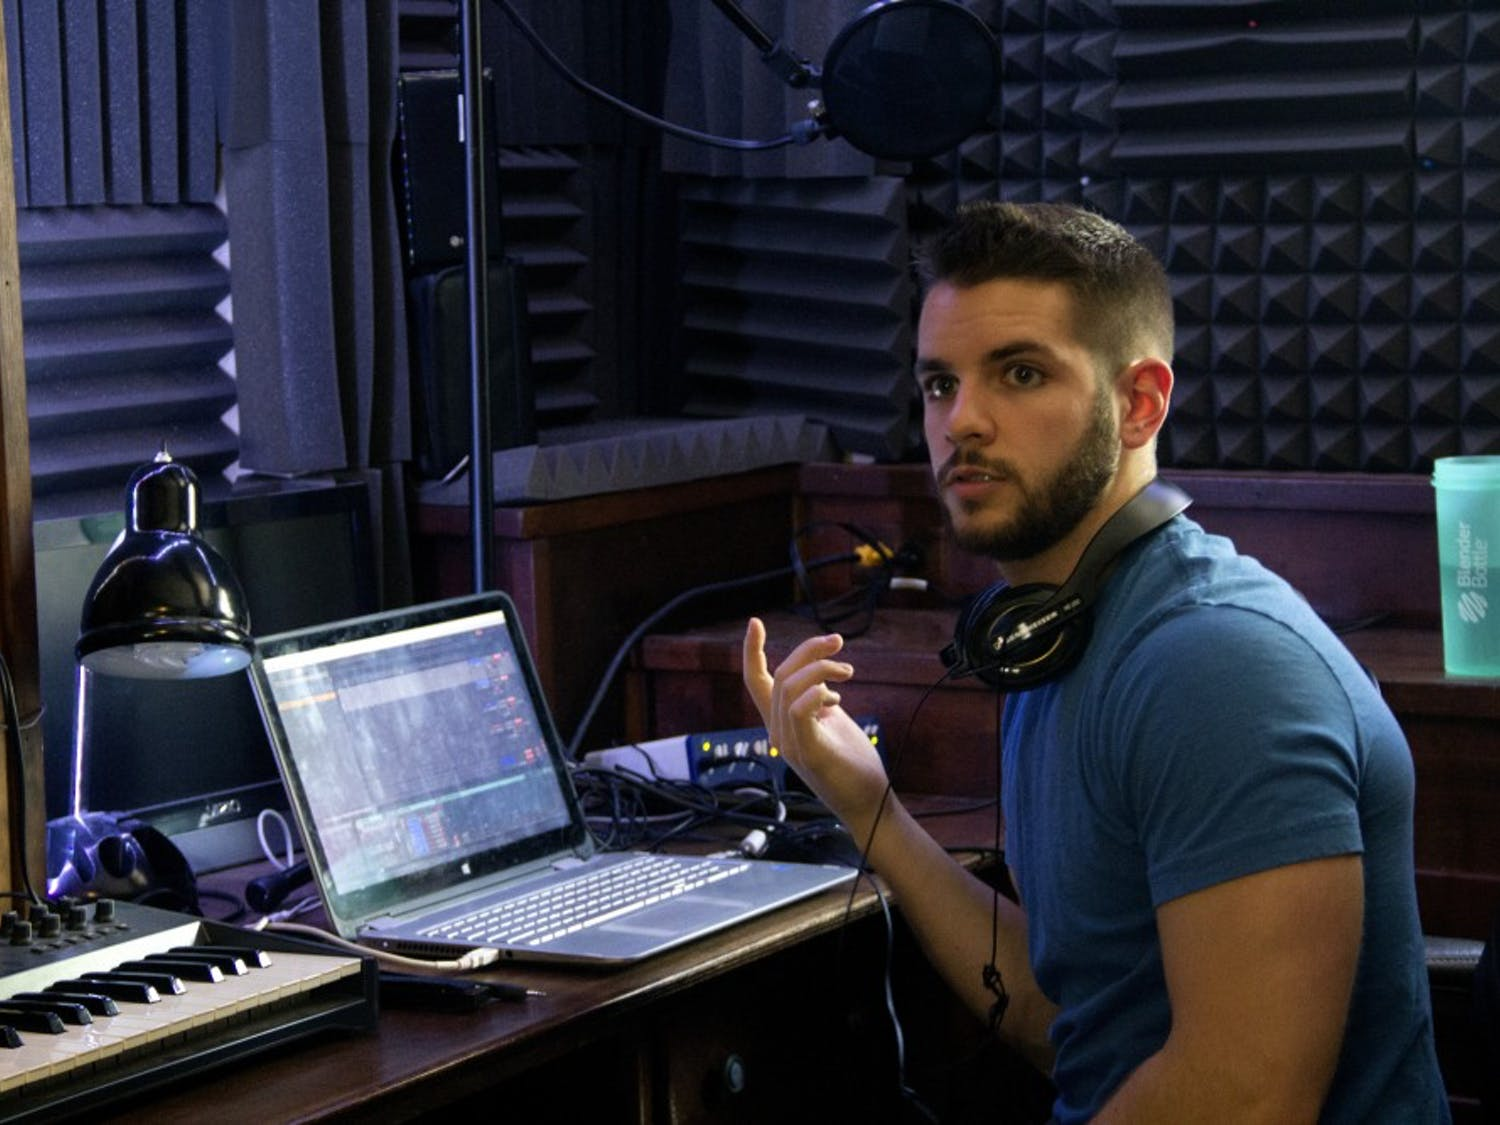 When he is not studying for a chemistry exam or volunteering in Honduras, Samuel Vespone, a 2018 graduate from UB, is producing and making music in his own bedroom. His bedroom is set up like a studio, which allows him to express his creativity with the instruments he knows how to play